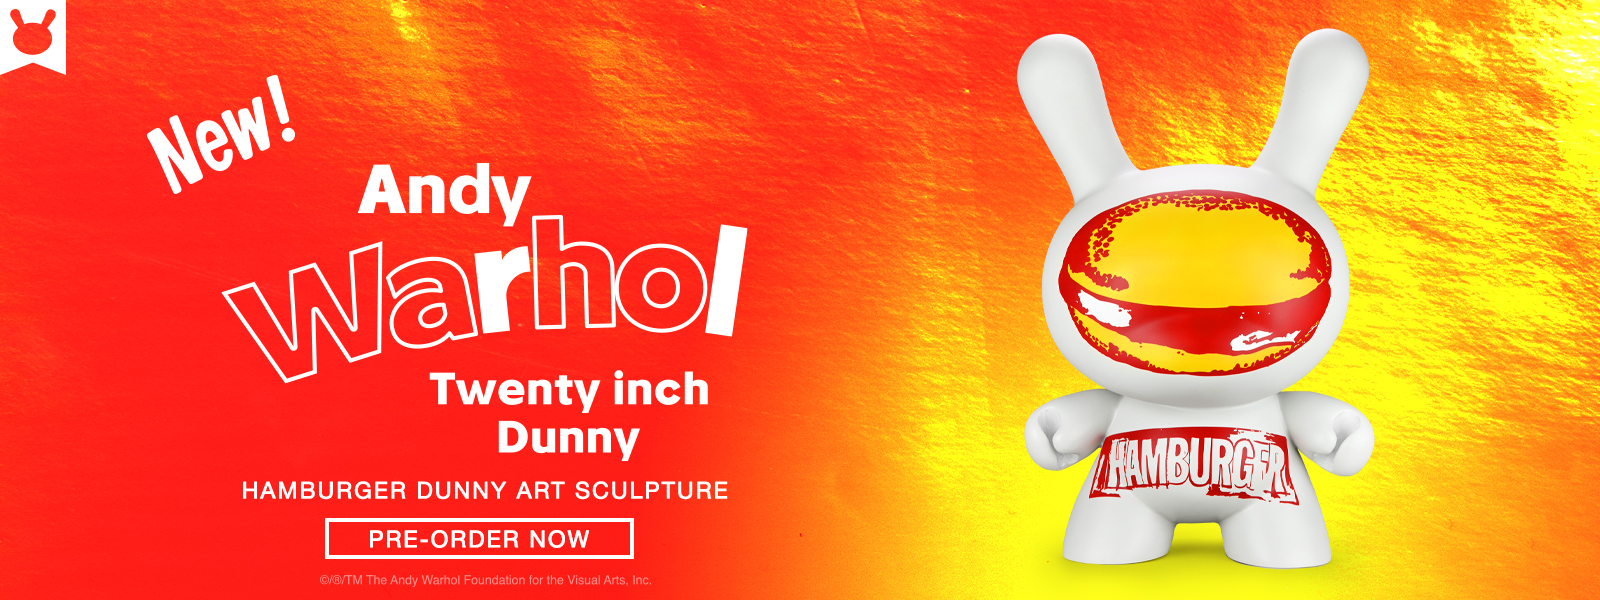 """We've made just TWENTY carefully crafted 20-inch Dunny sculptures in honor of the iconic artist's """"Hamburger"""" artwork. Part of a 1985 series called Ads and Illustrations, Warhol's """"Hamburger"""" focused on one of the most popular manifestations of Americana. Originally in black and white, Warhol would also experiment with other color combinations, most famously this red-and-yellow version. Two previous limited-edition Warhol 20-inch Dunny art pieces sold out immediately upon release."""